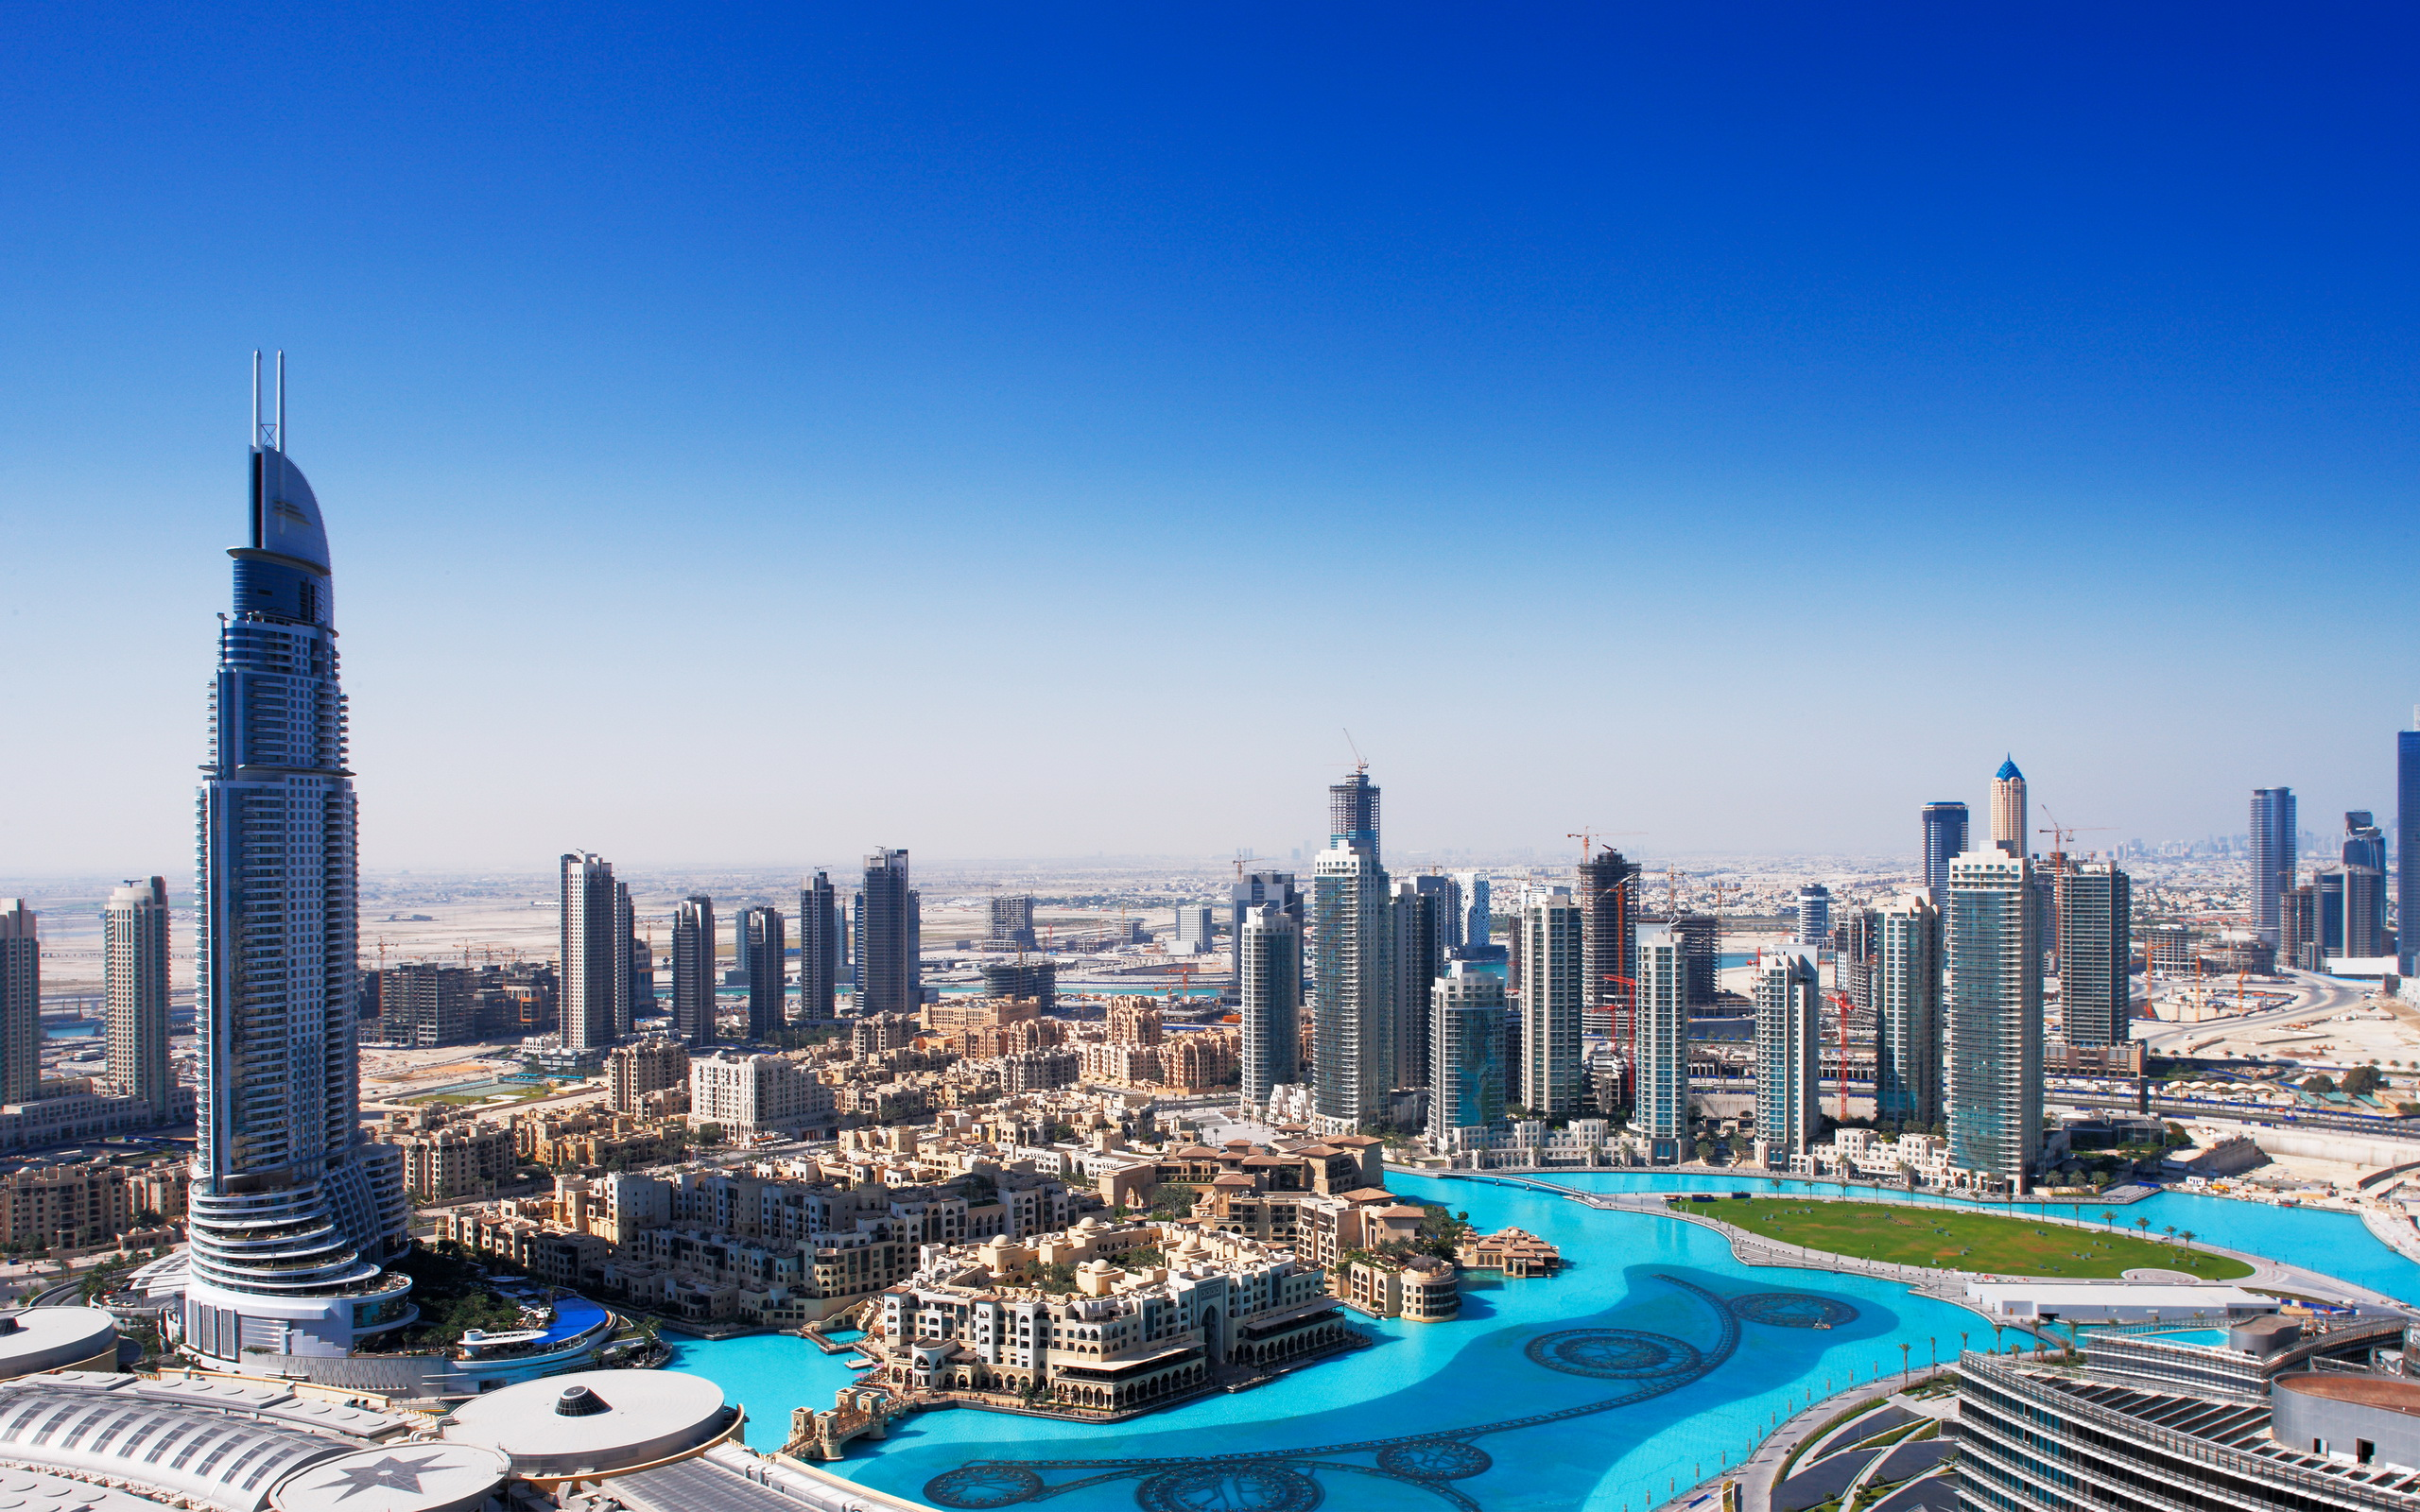 Dubai Full Hd Wallpaper And Background Image 2560x1600